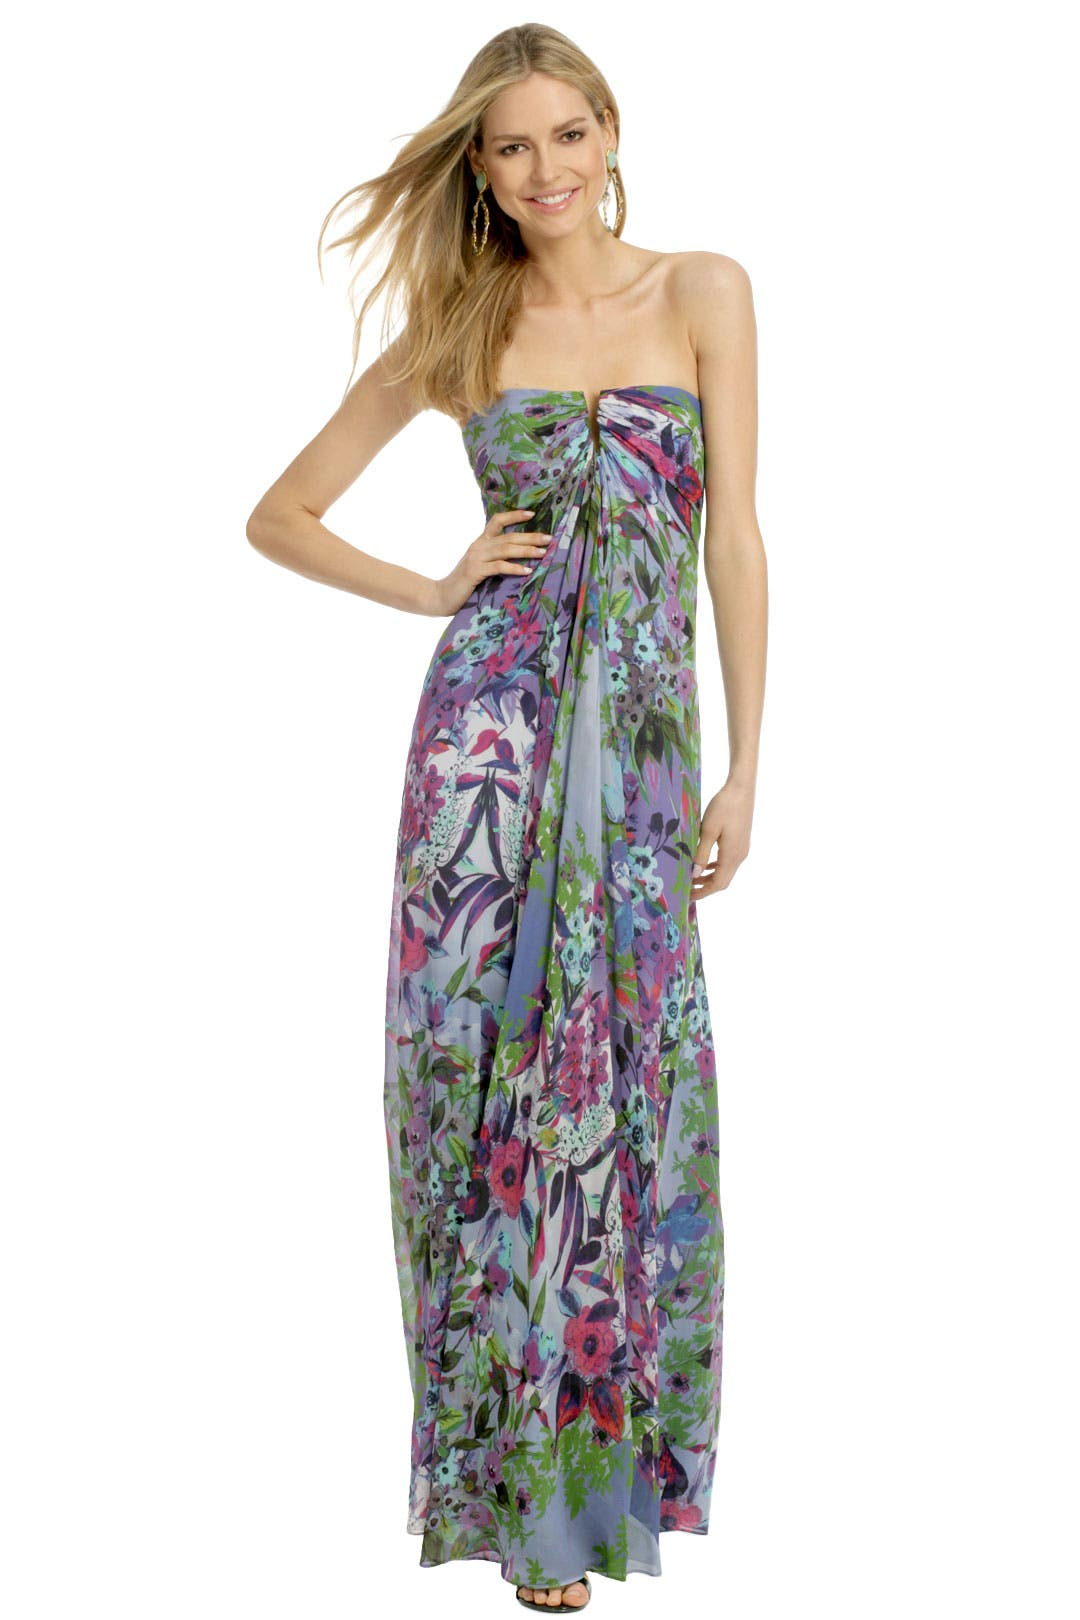 Angelina Wildflower Maxi by Nicole Miller